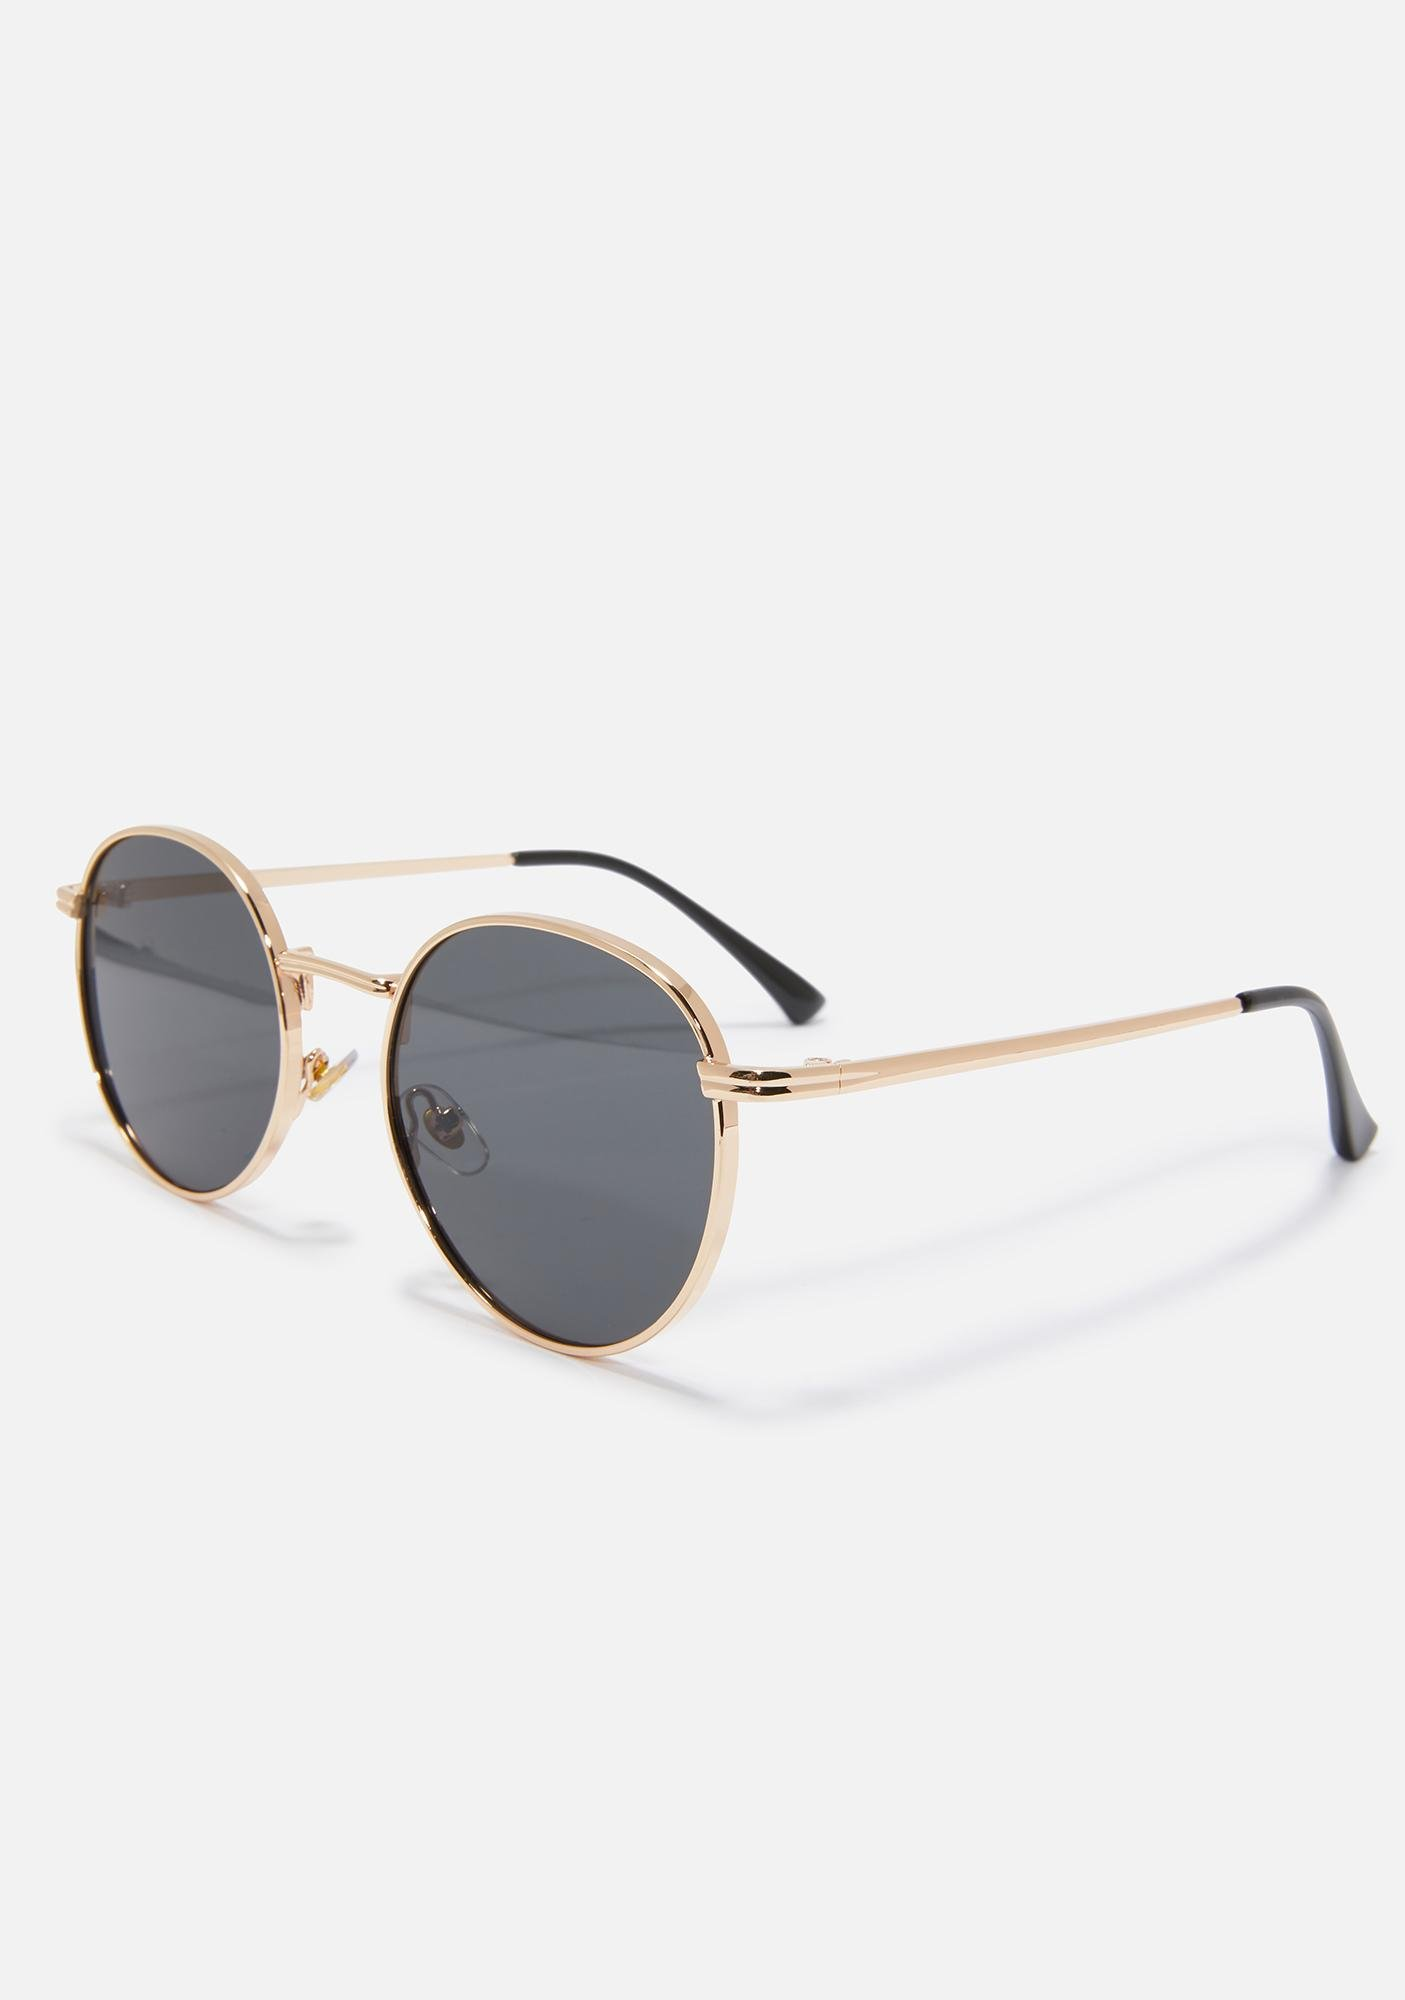 Don't Even Bother Wire Frame Sunglasses